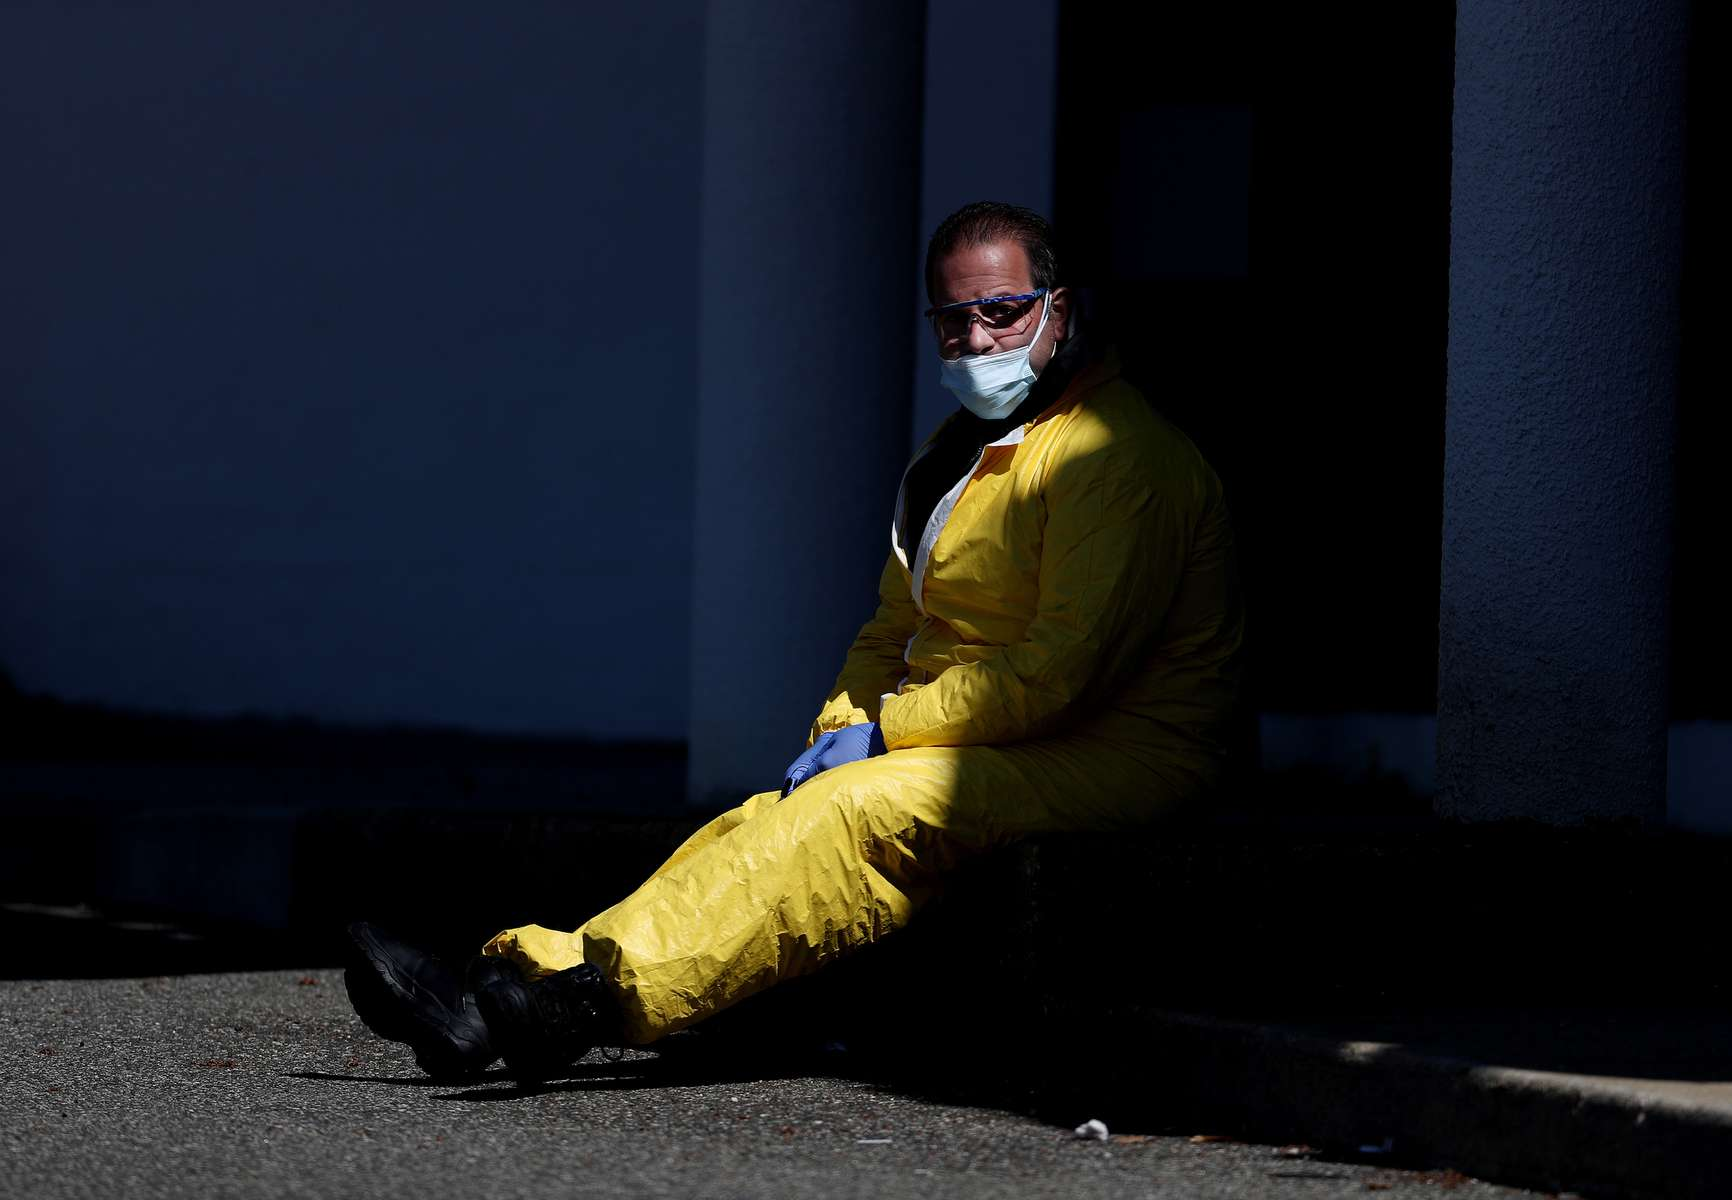 A Medical professional looks on at a drive-thru coronavirus testing site run by  ProHealth Care on April 06, 2020 in Jericho, New York. The World Health Organization declared coronavirus (COVID-19) a global pandemic on March 11th.